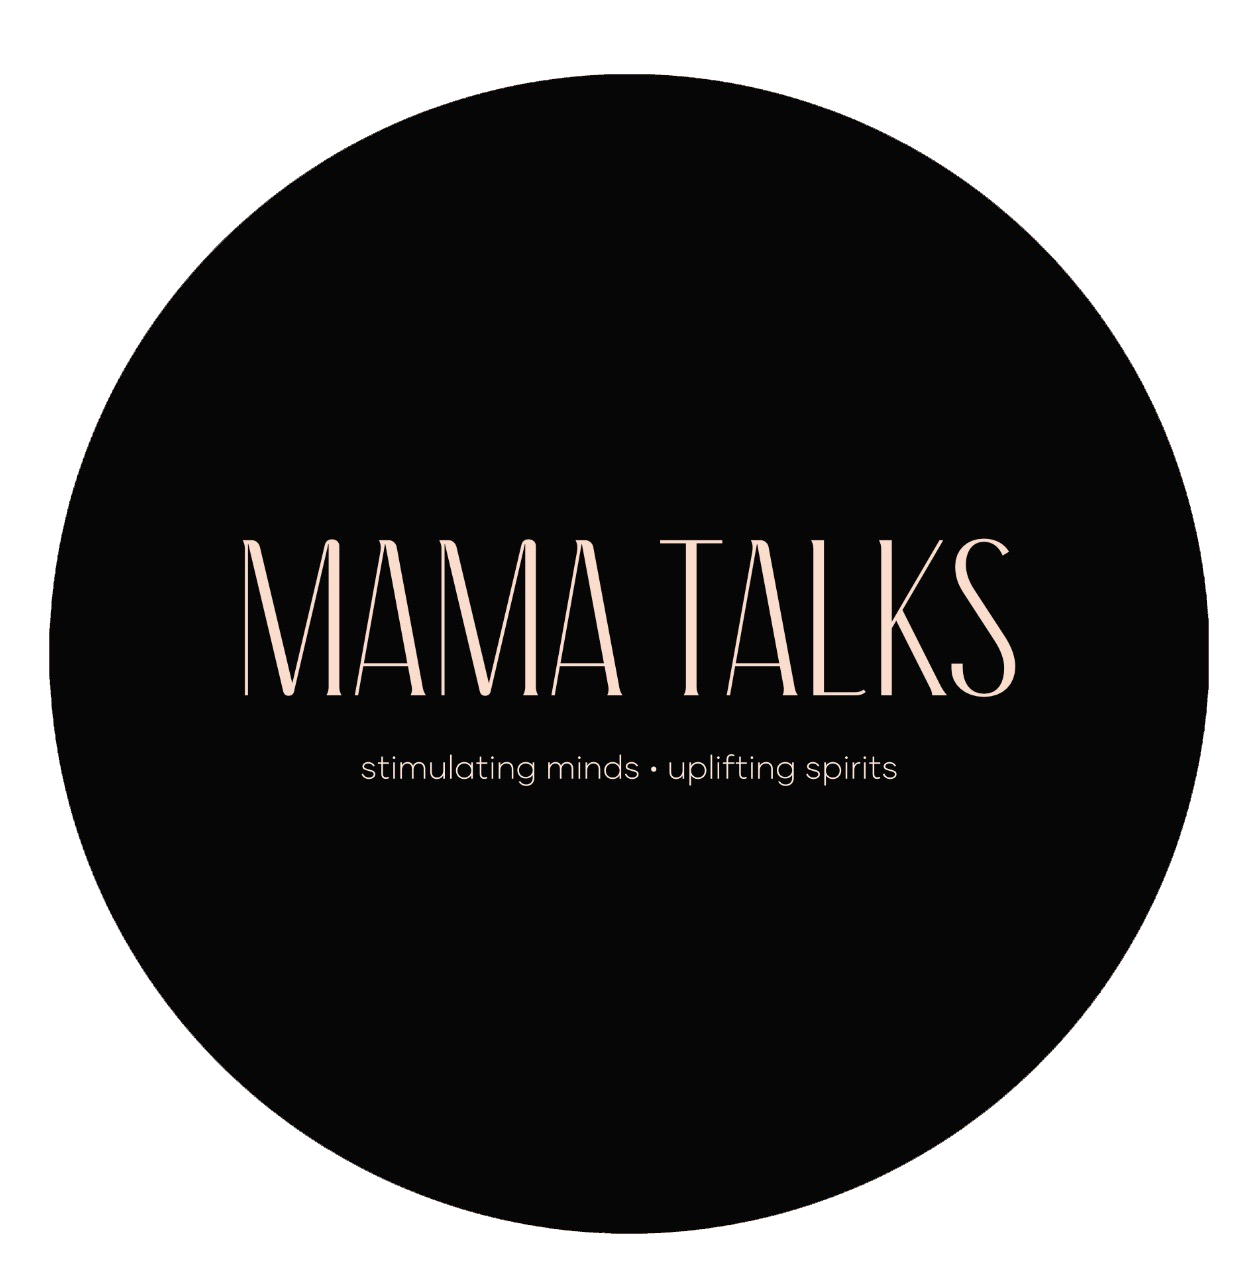 MAMA TALKS NYC